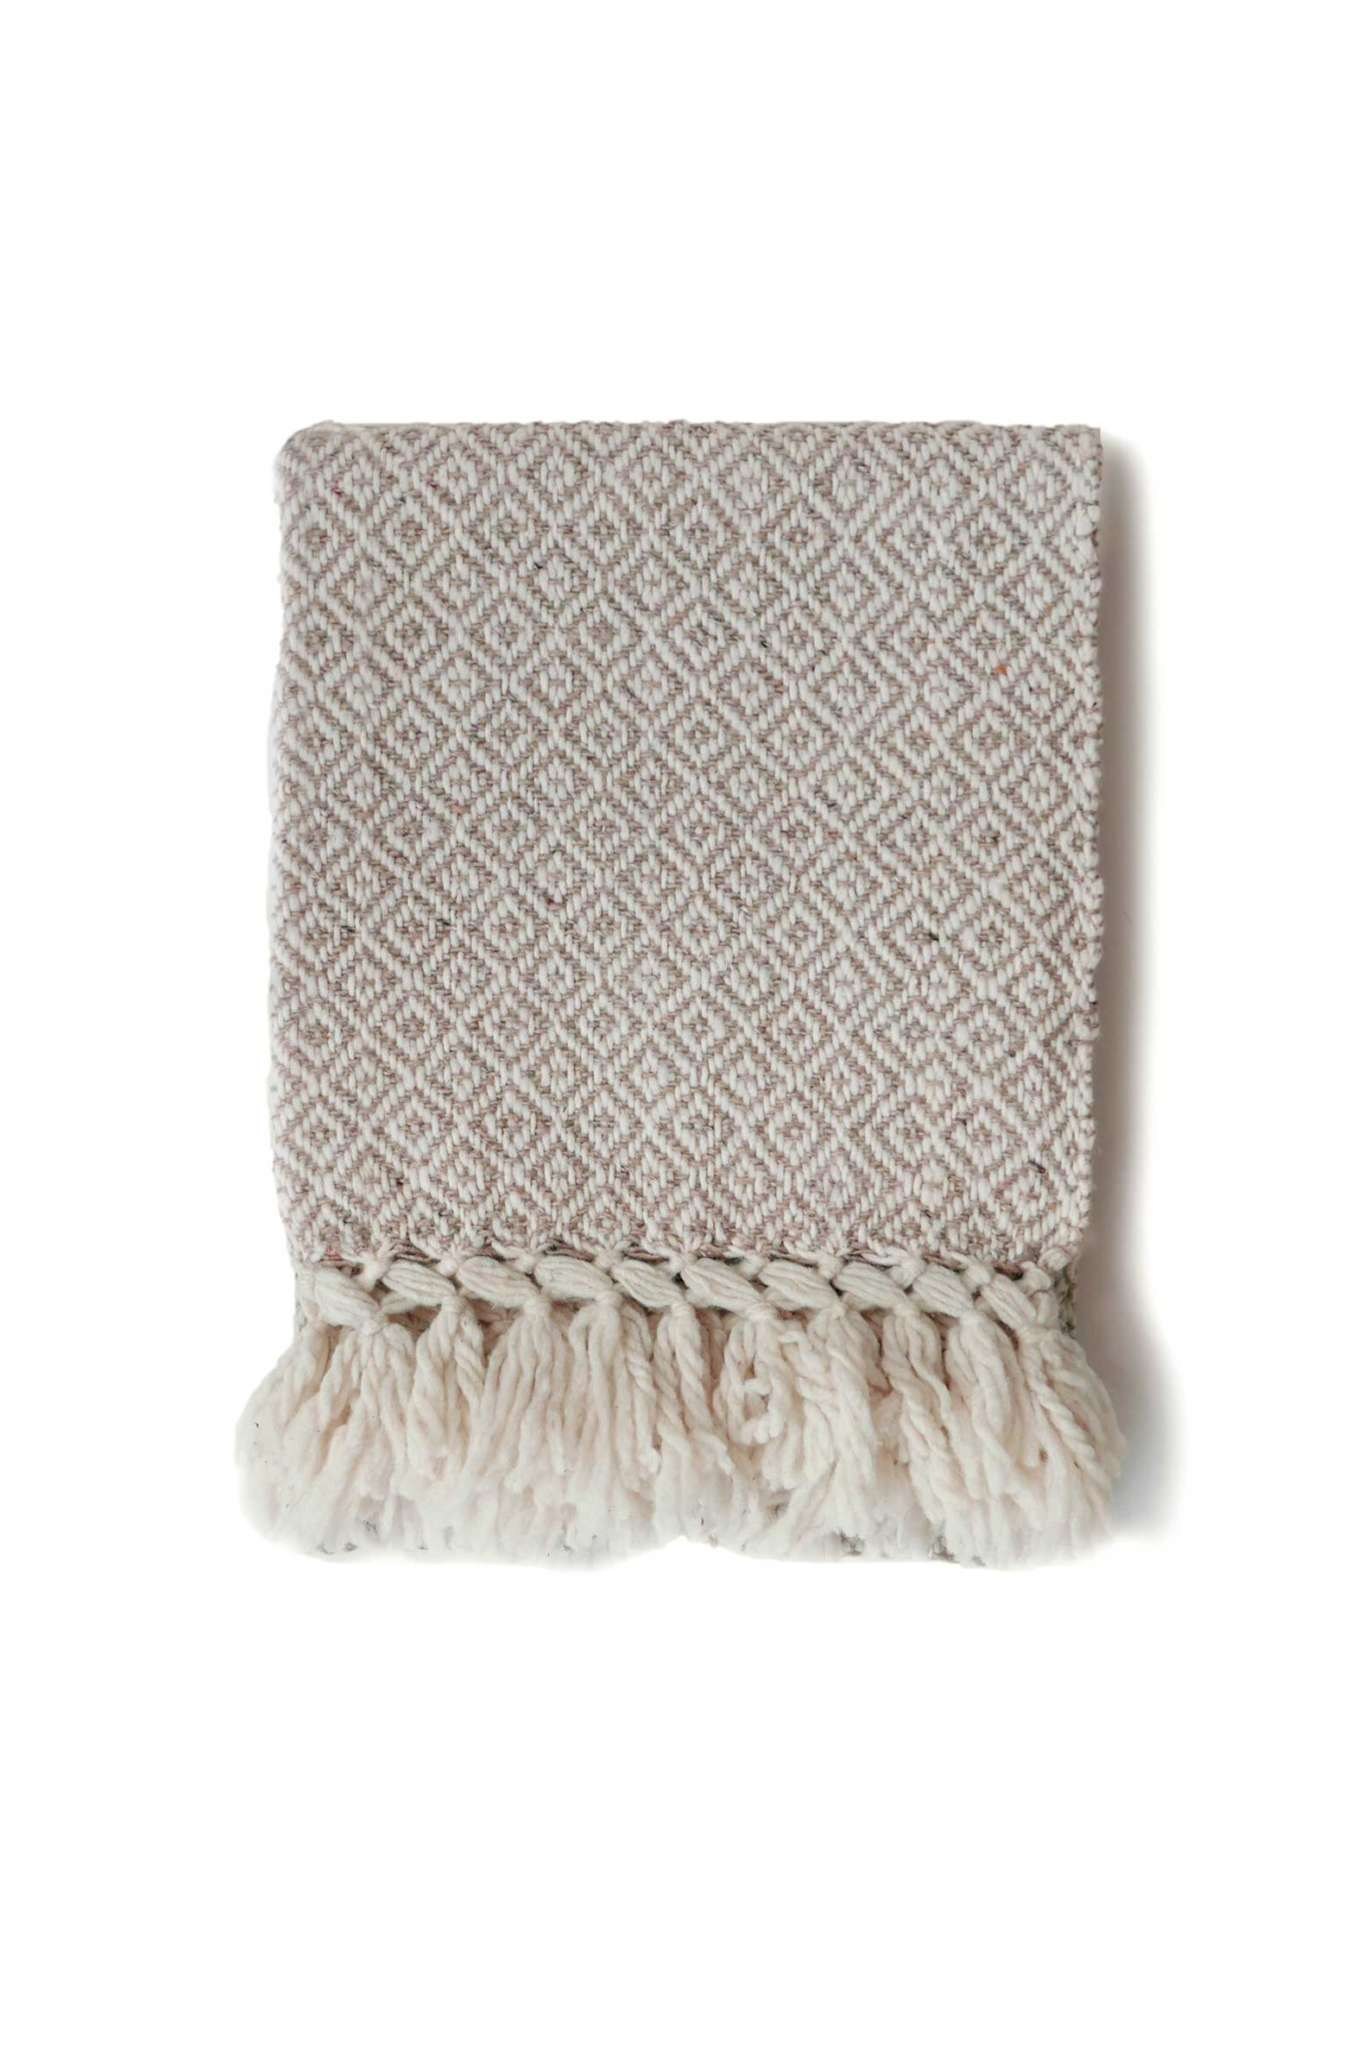 Mexican Neutral Wool Rebozo Throw - www.nidocollective.com #mexicantextiles #woolthrow